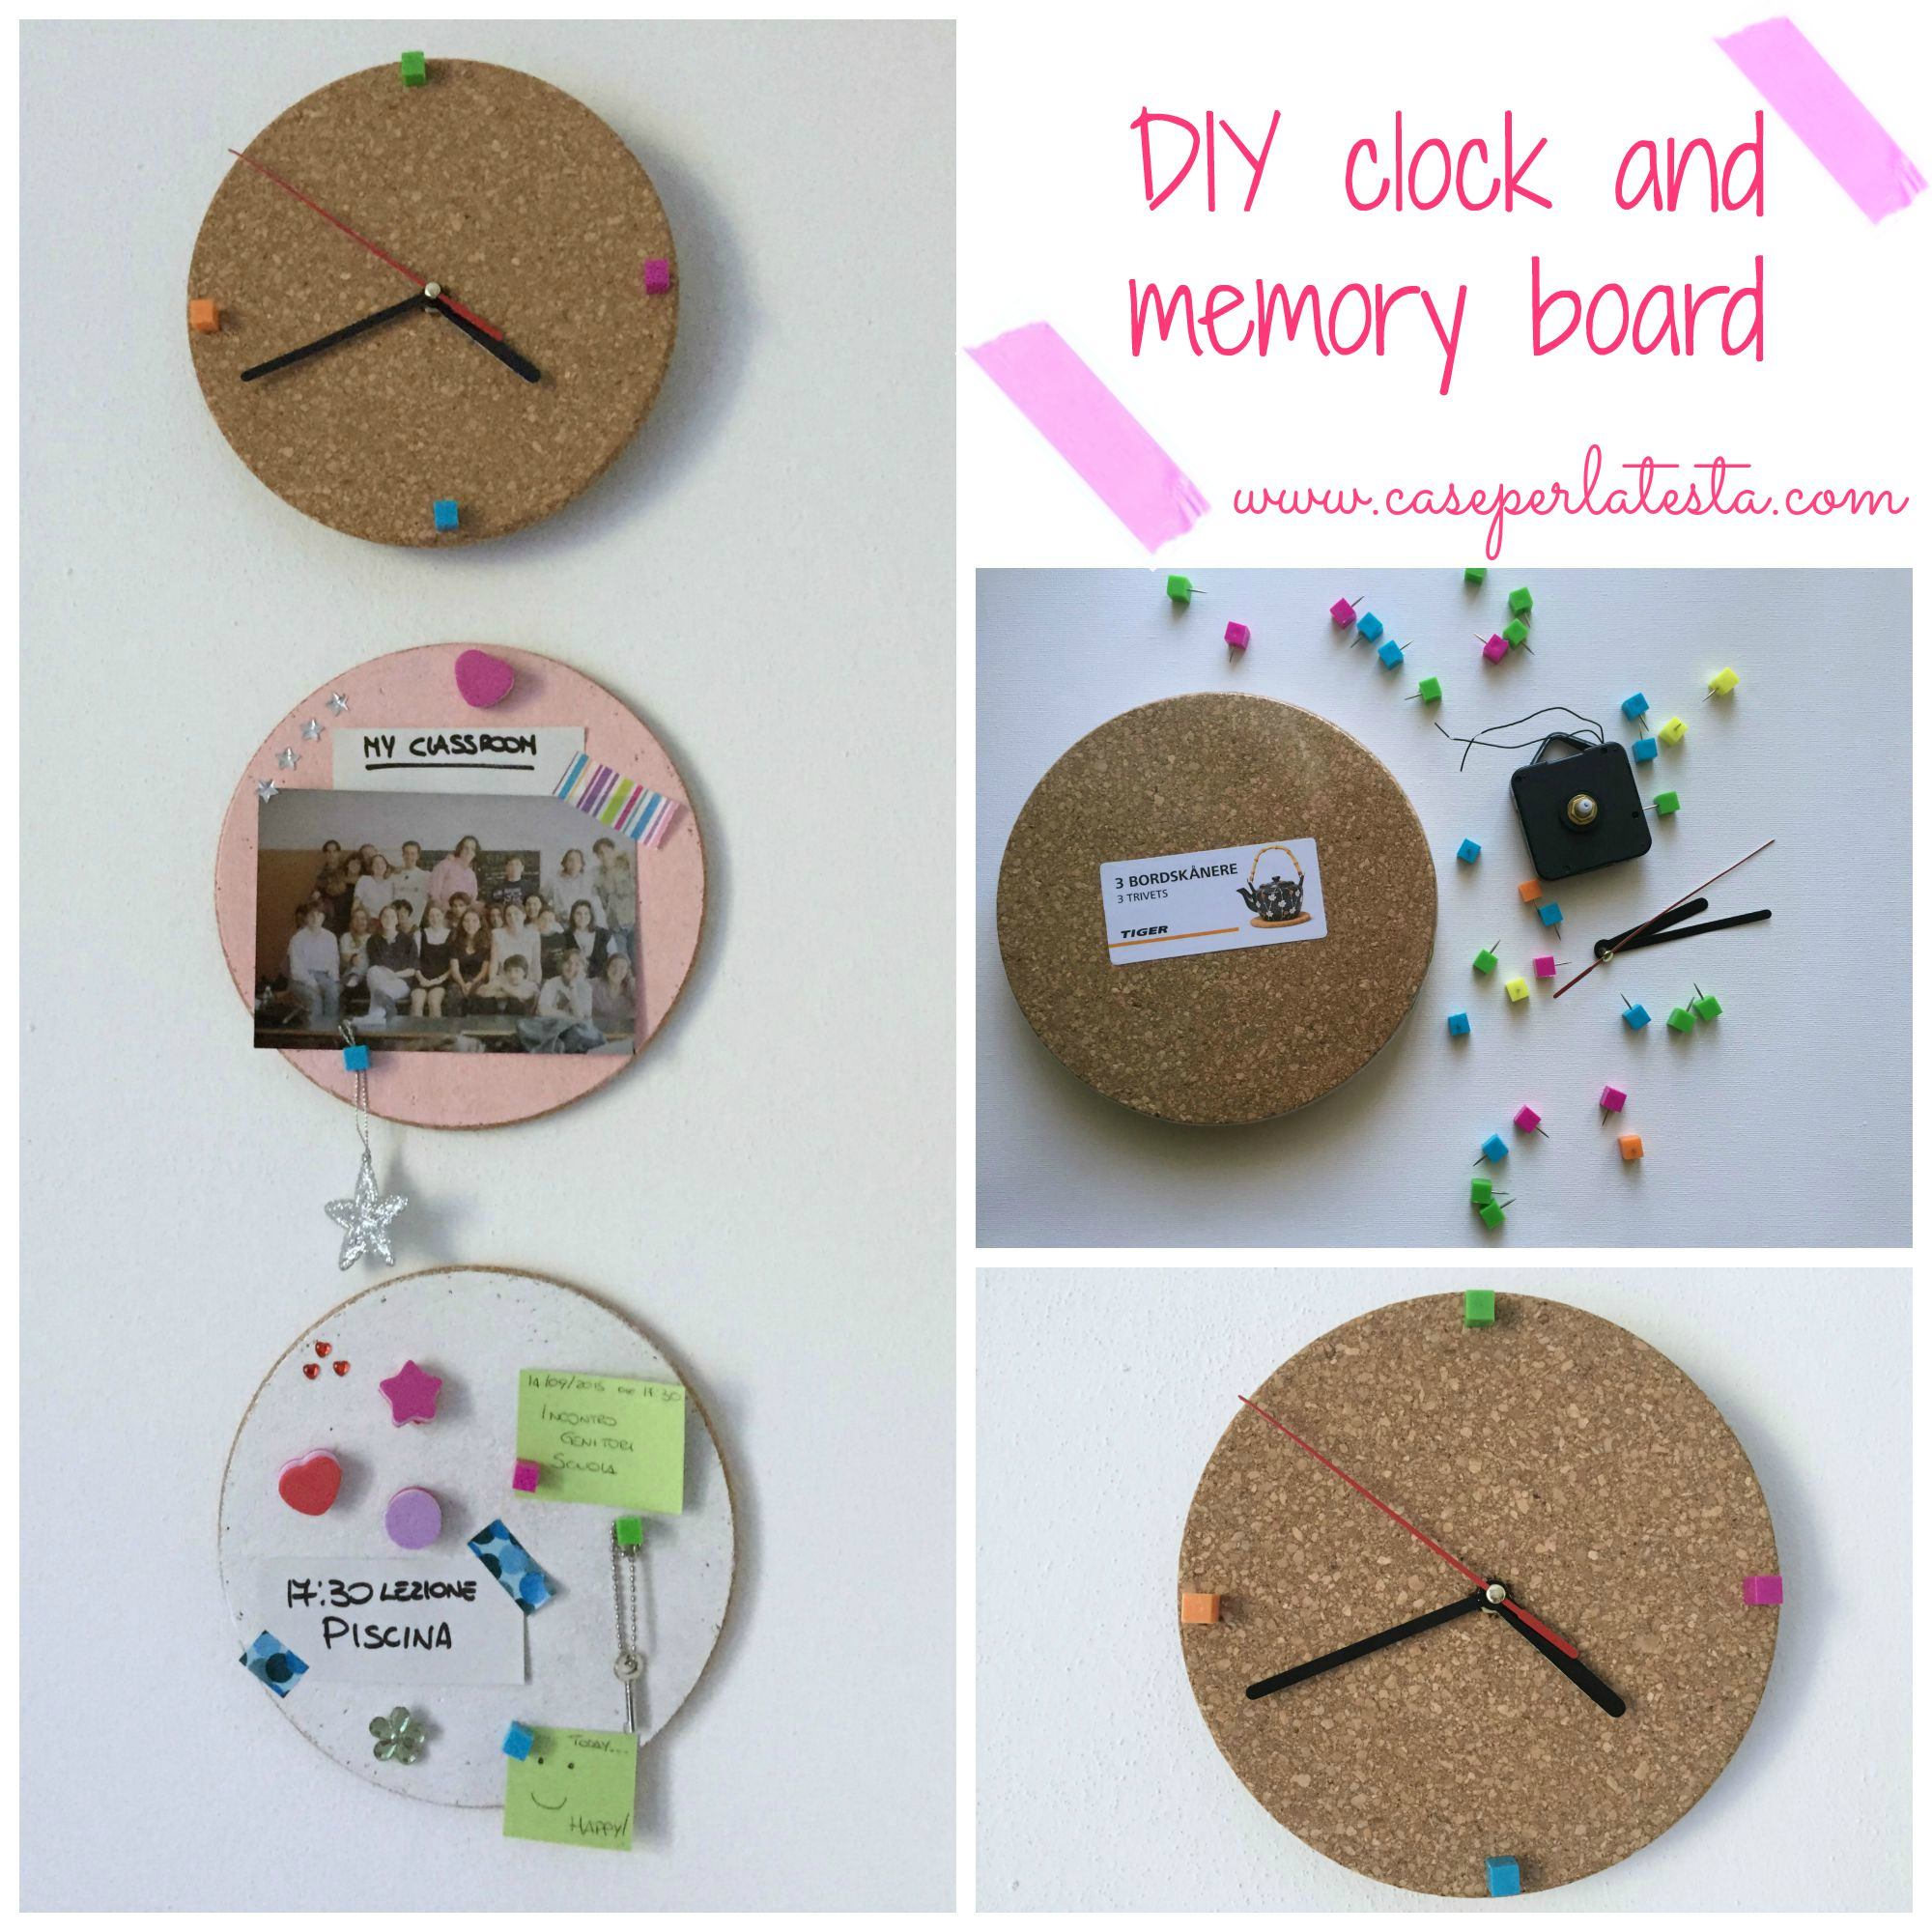 DIY_clock_and_memory_board_tutorial